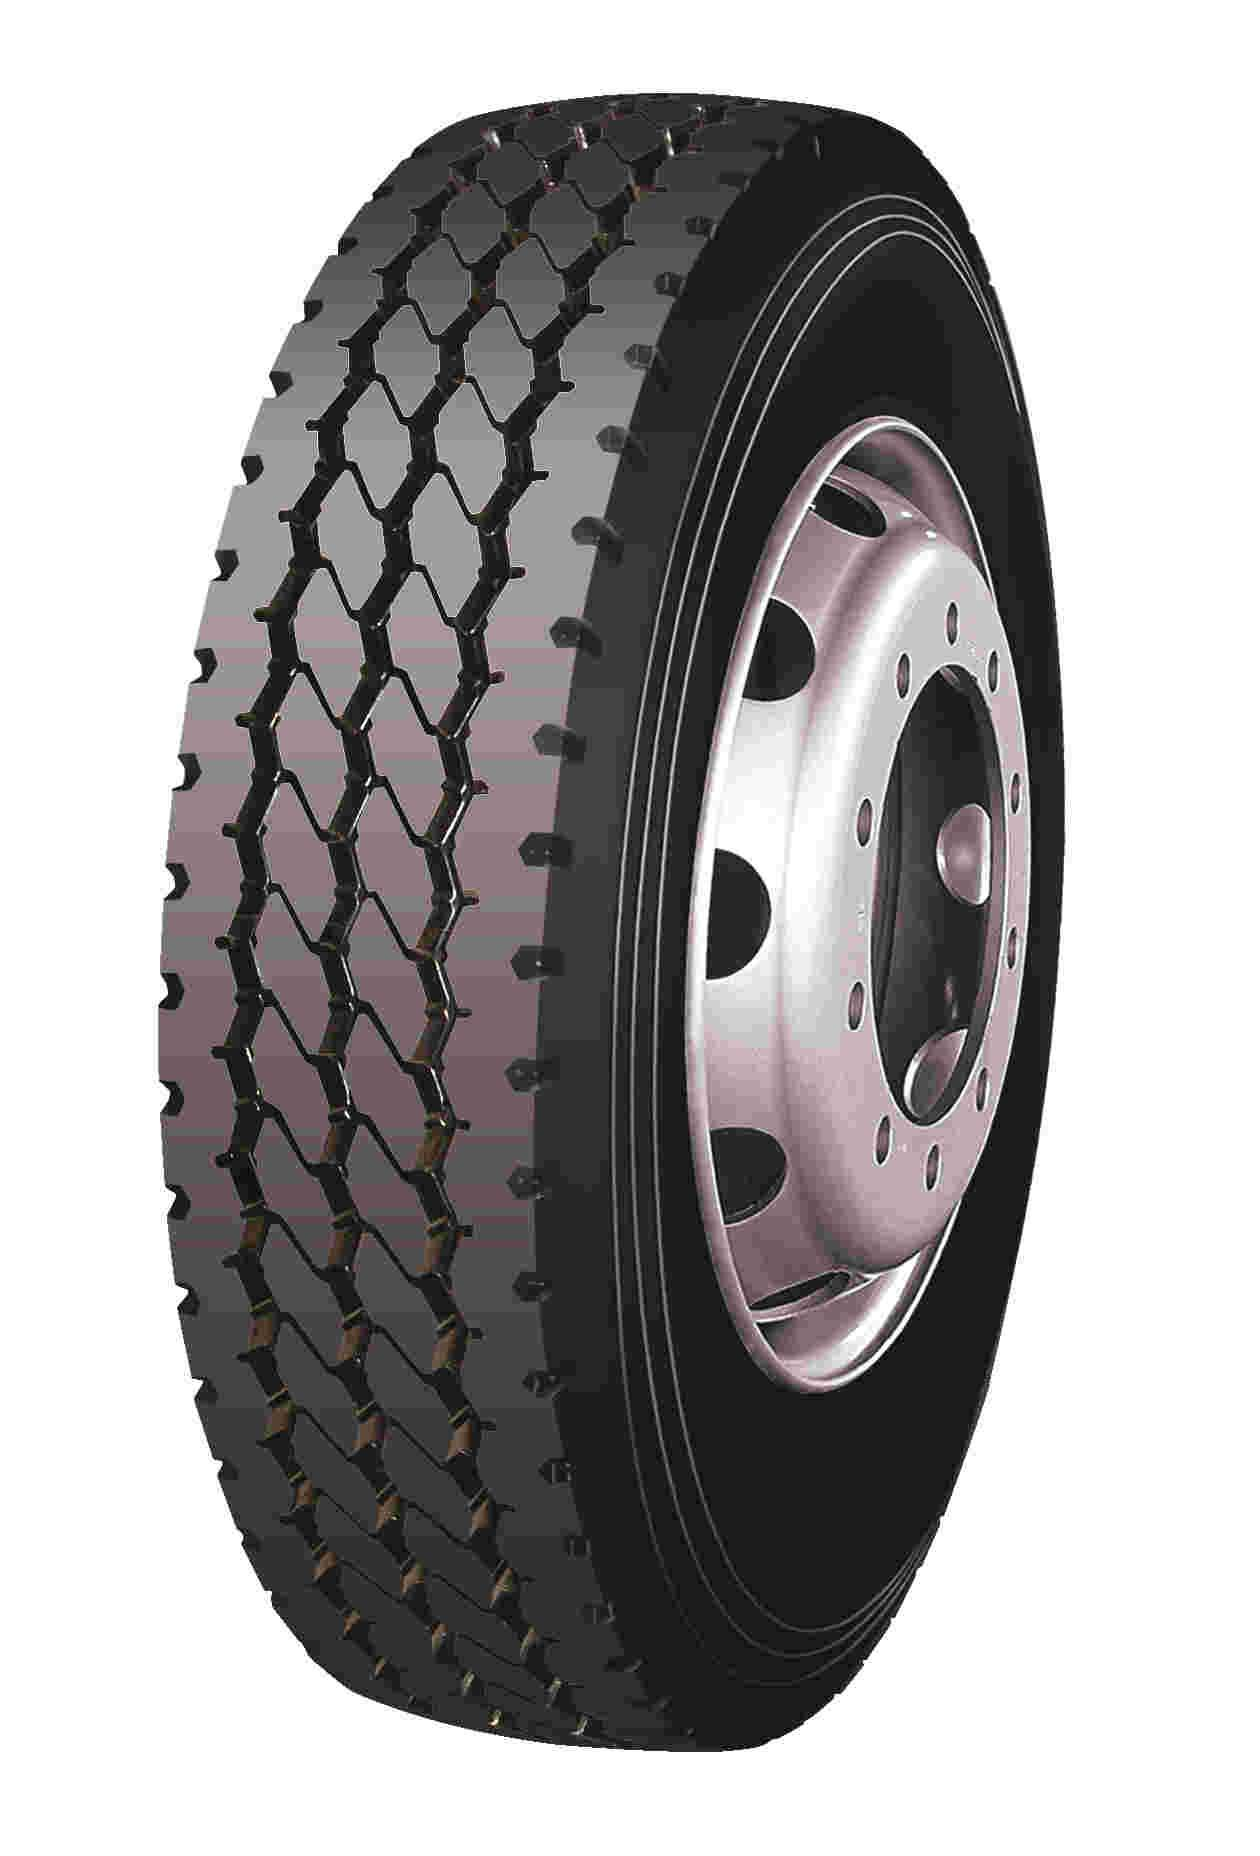 wholesale semi truck tires 295/75r22.5 285/75r24.5 commercial truck tire 11r22.5